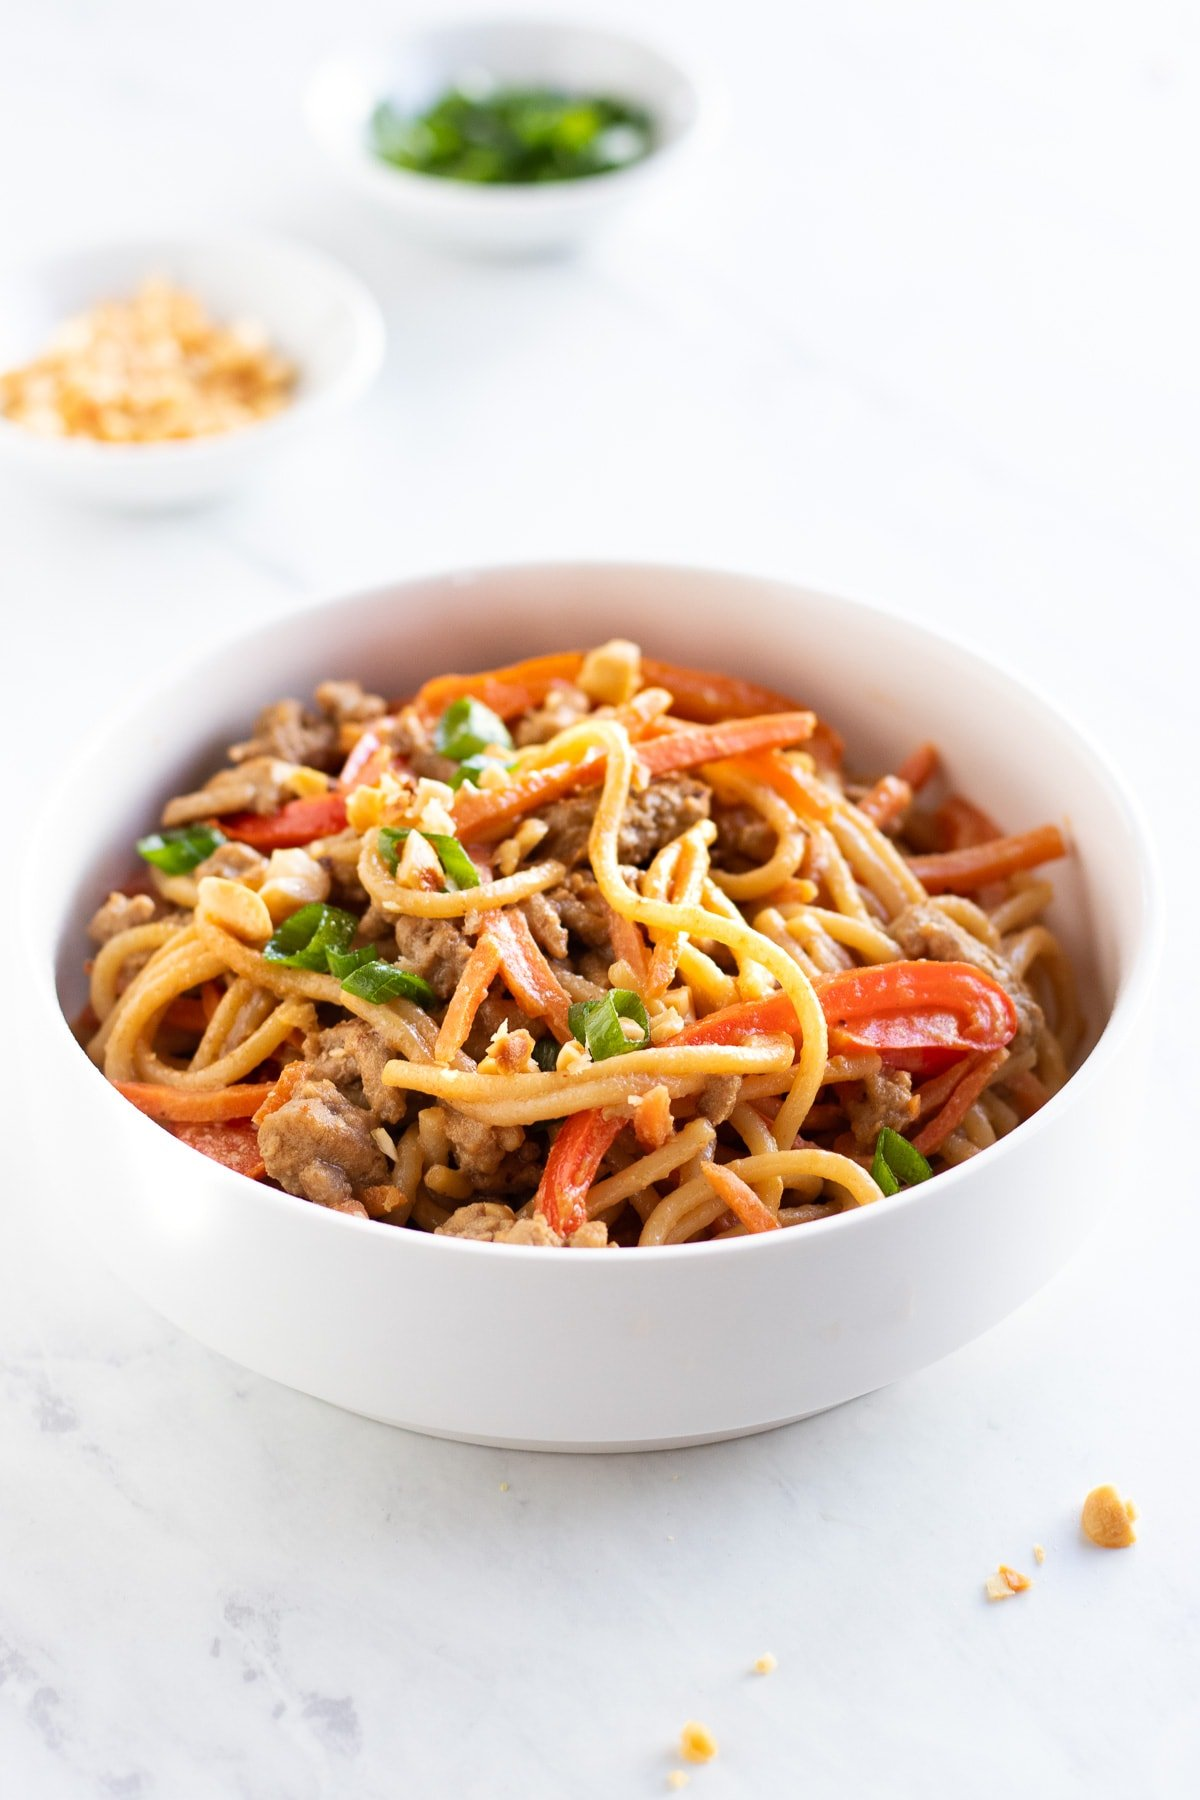 A bowl of noodles coated with peanut sauce.